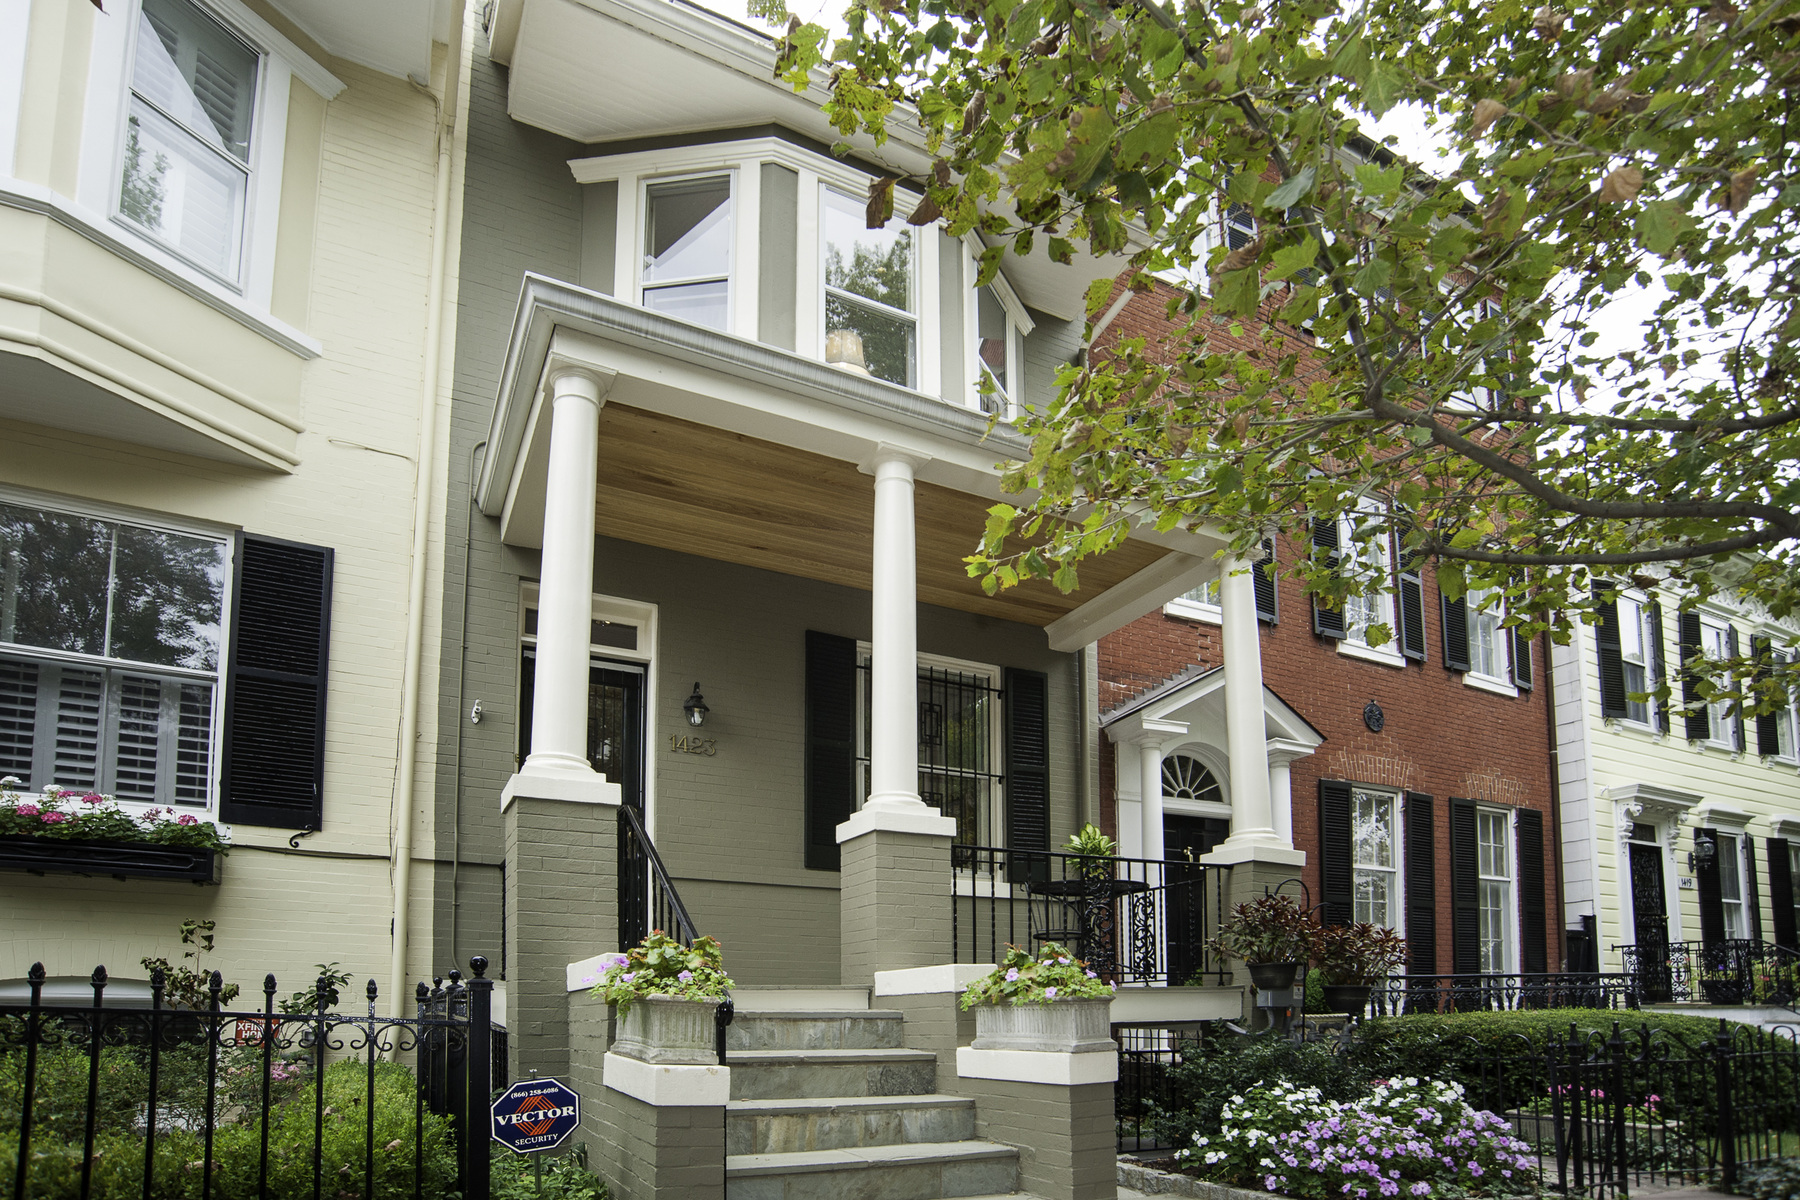 Townhouse for Sale at 1423 33rd Street Nw, Washington Georgetown, Washington, District Of Columbia 20007 United States